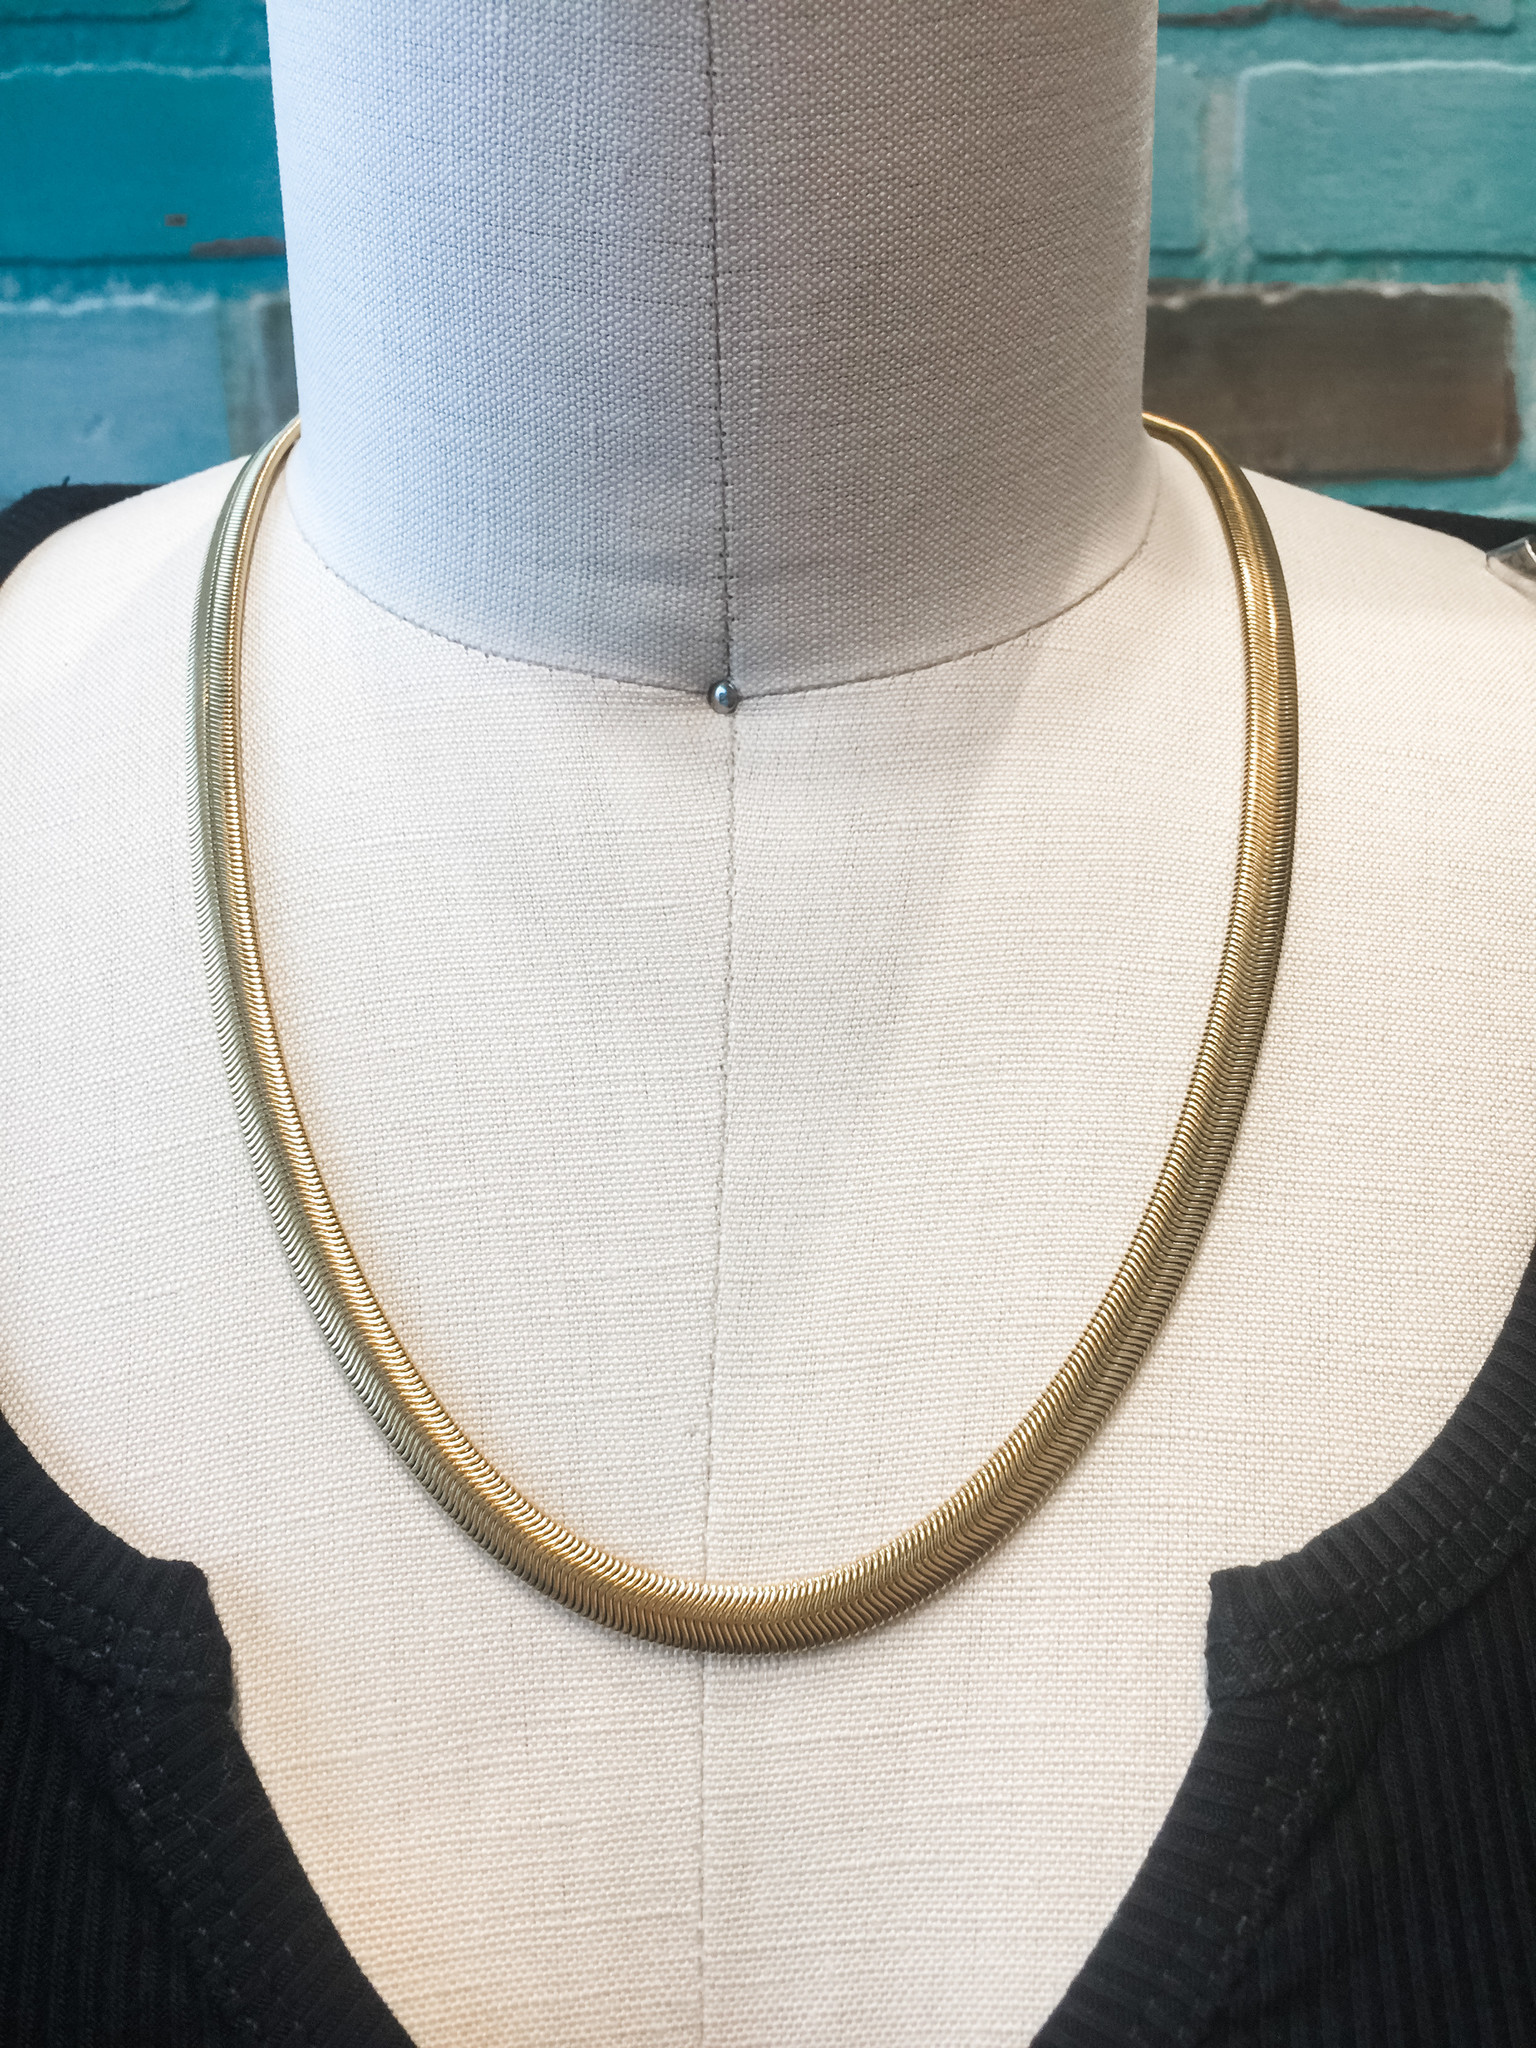 Mary Kathryn Designs Menswear Necklace Snake Chain